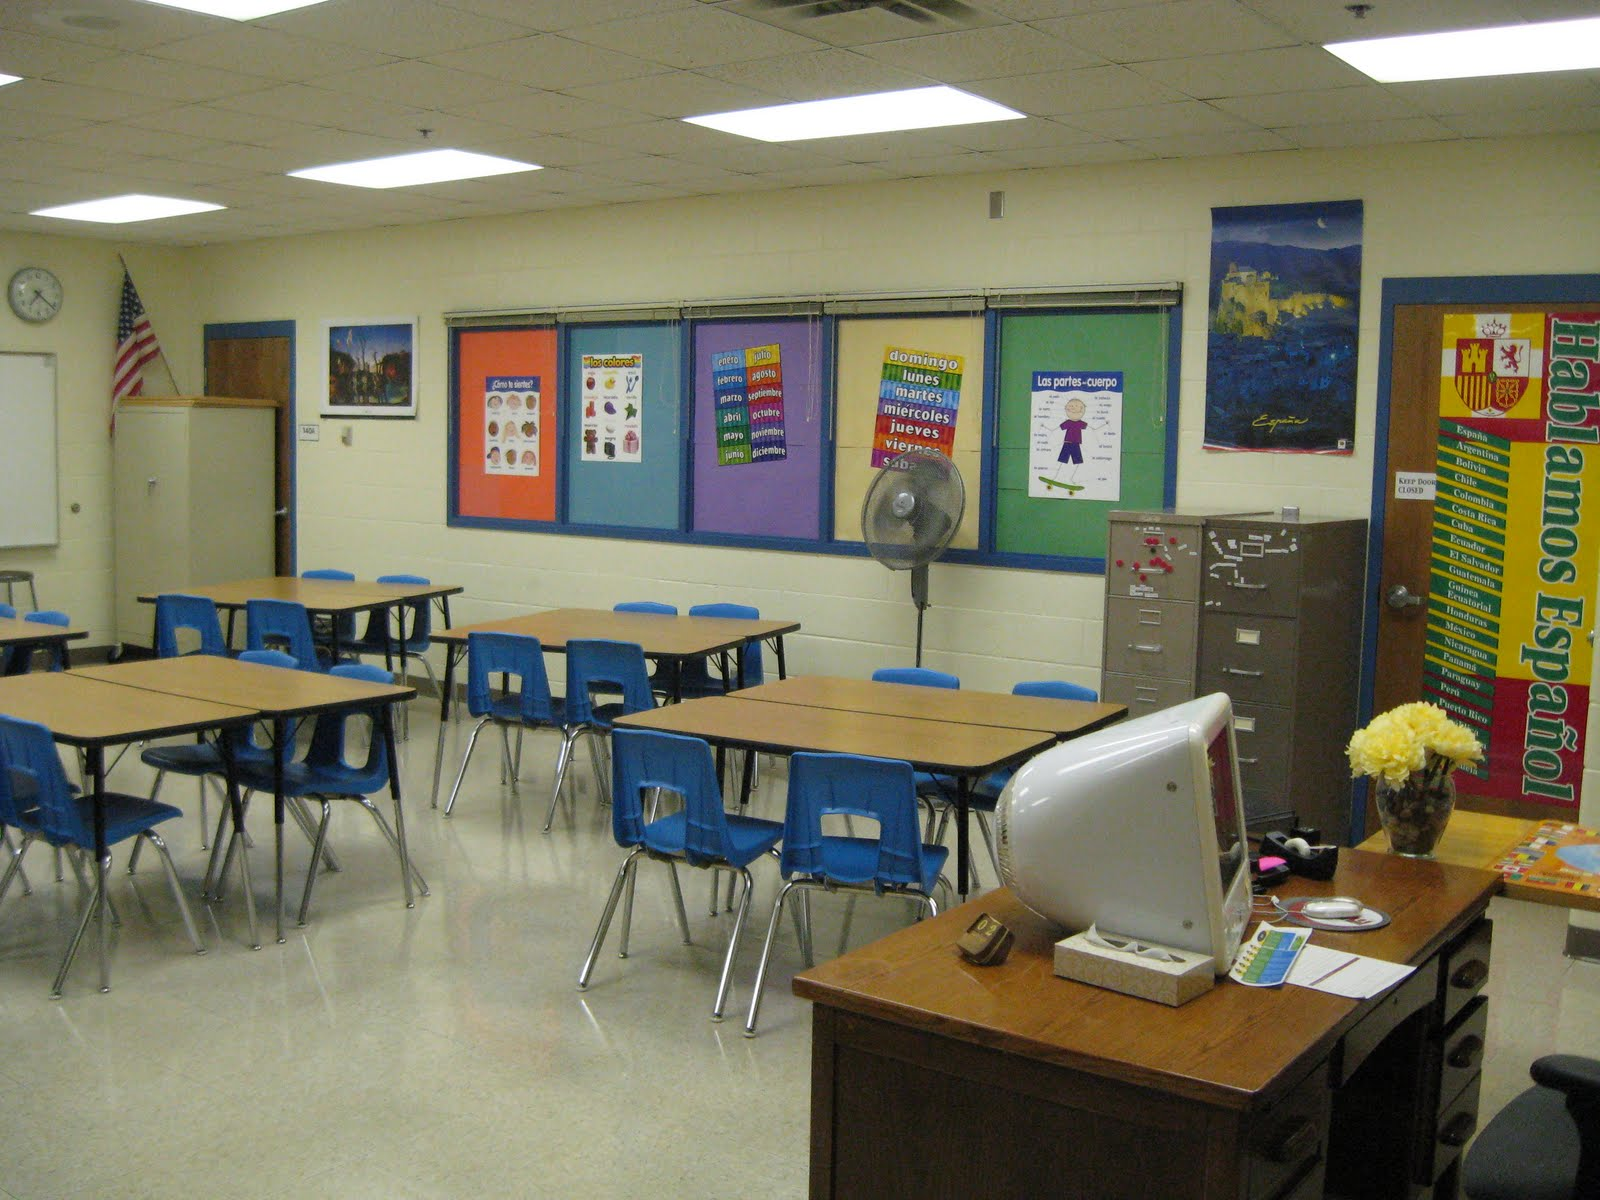 Project Decoration: Classroom Decorations